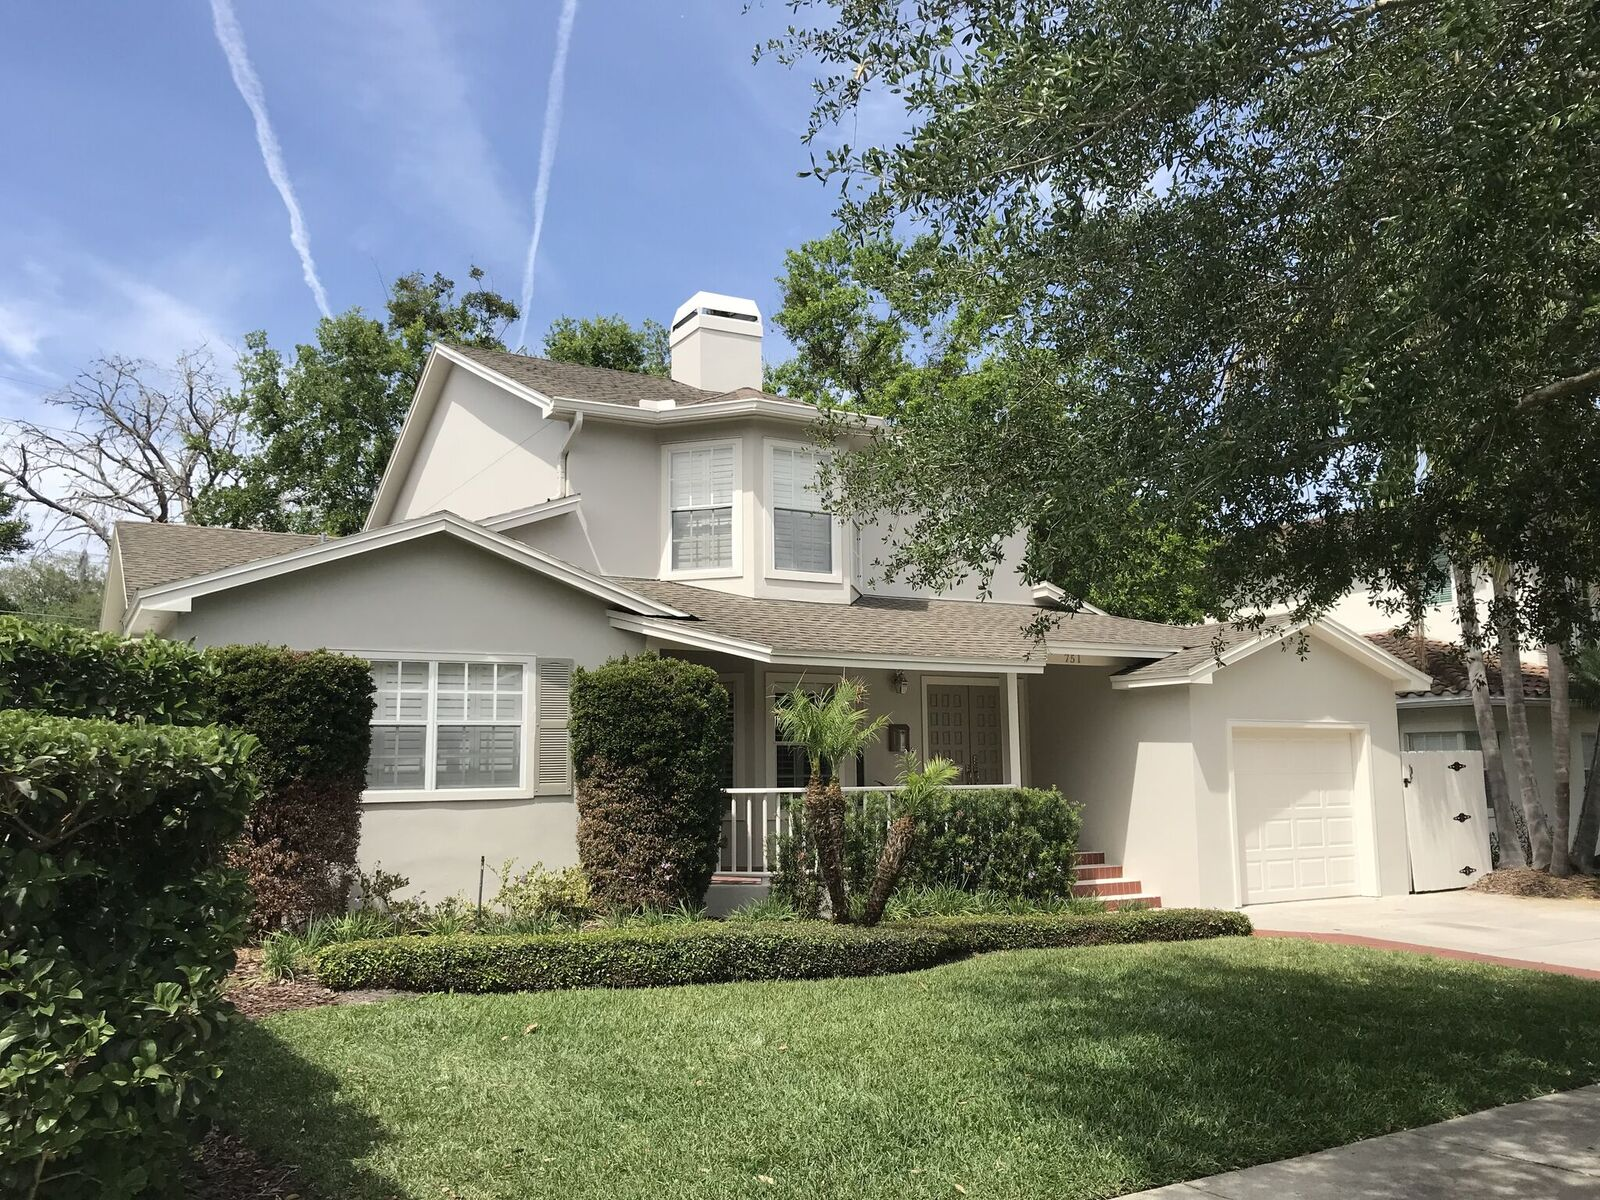 Latest Projects Exterior Painting House Painting